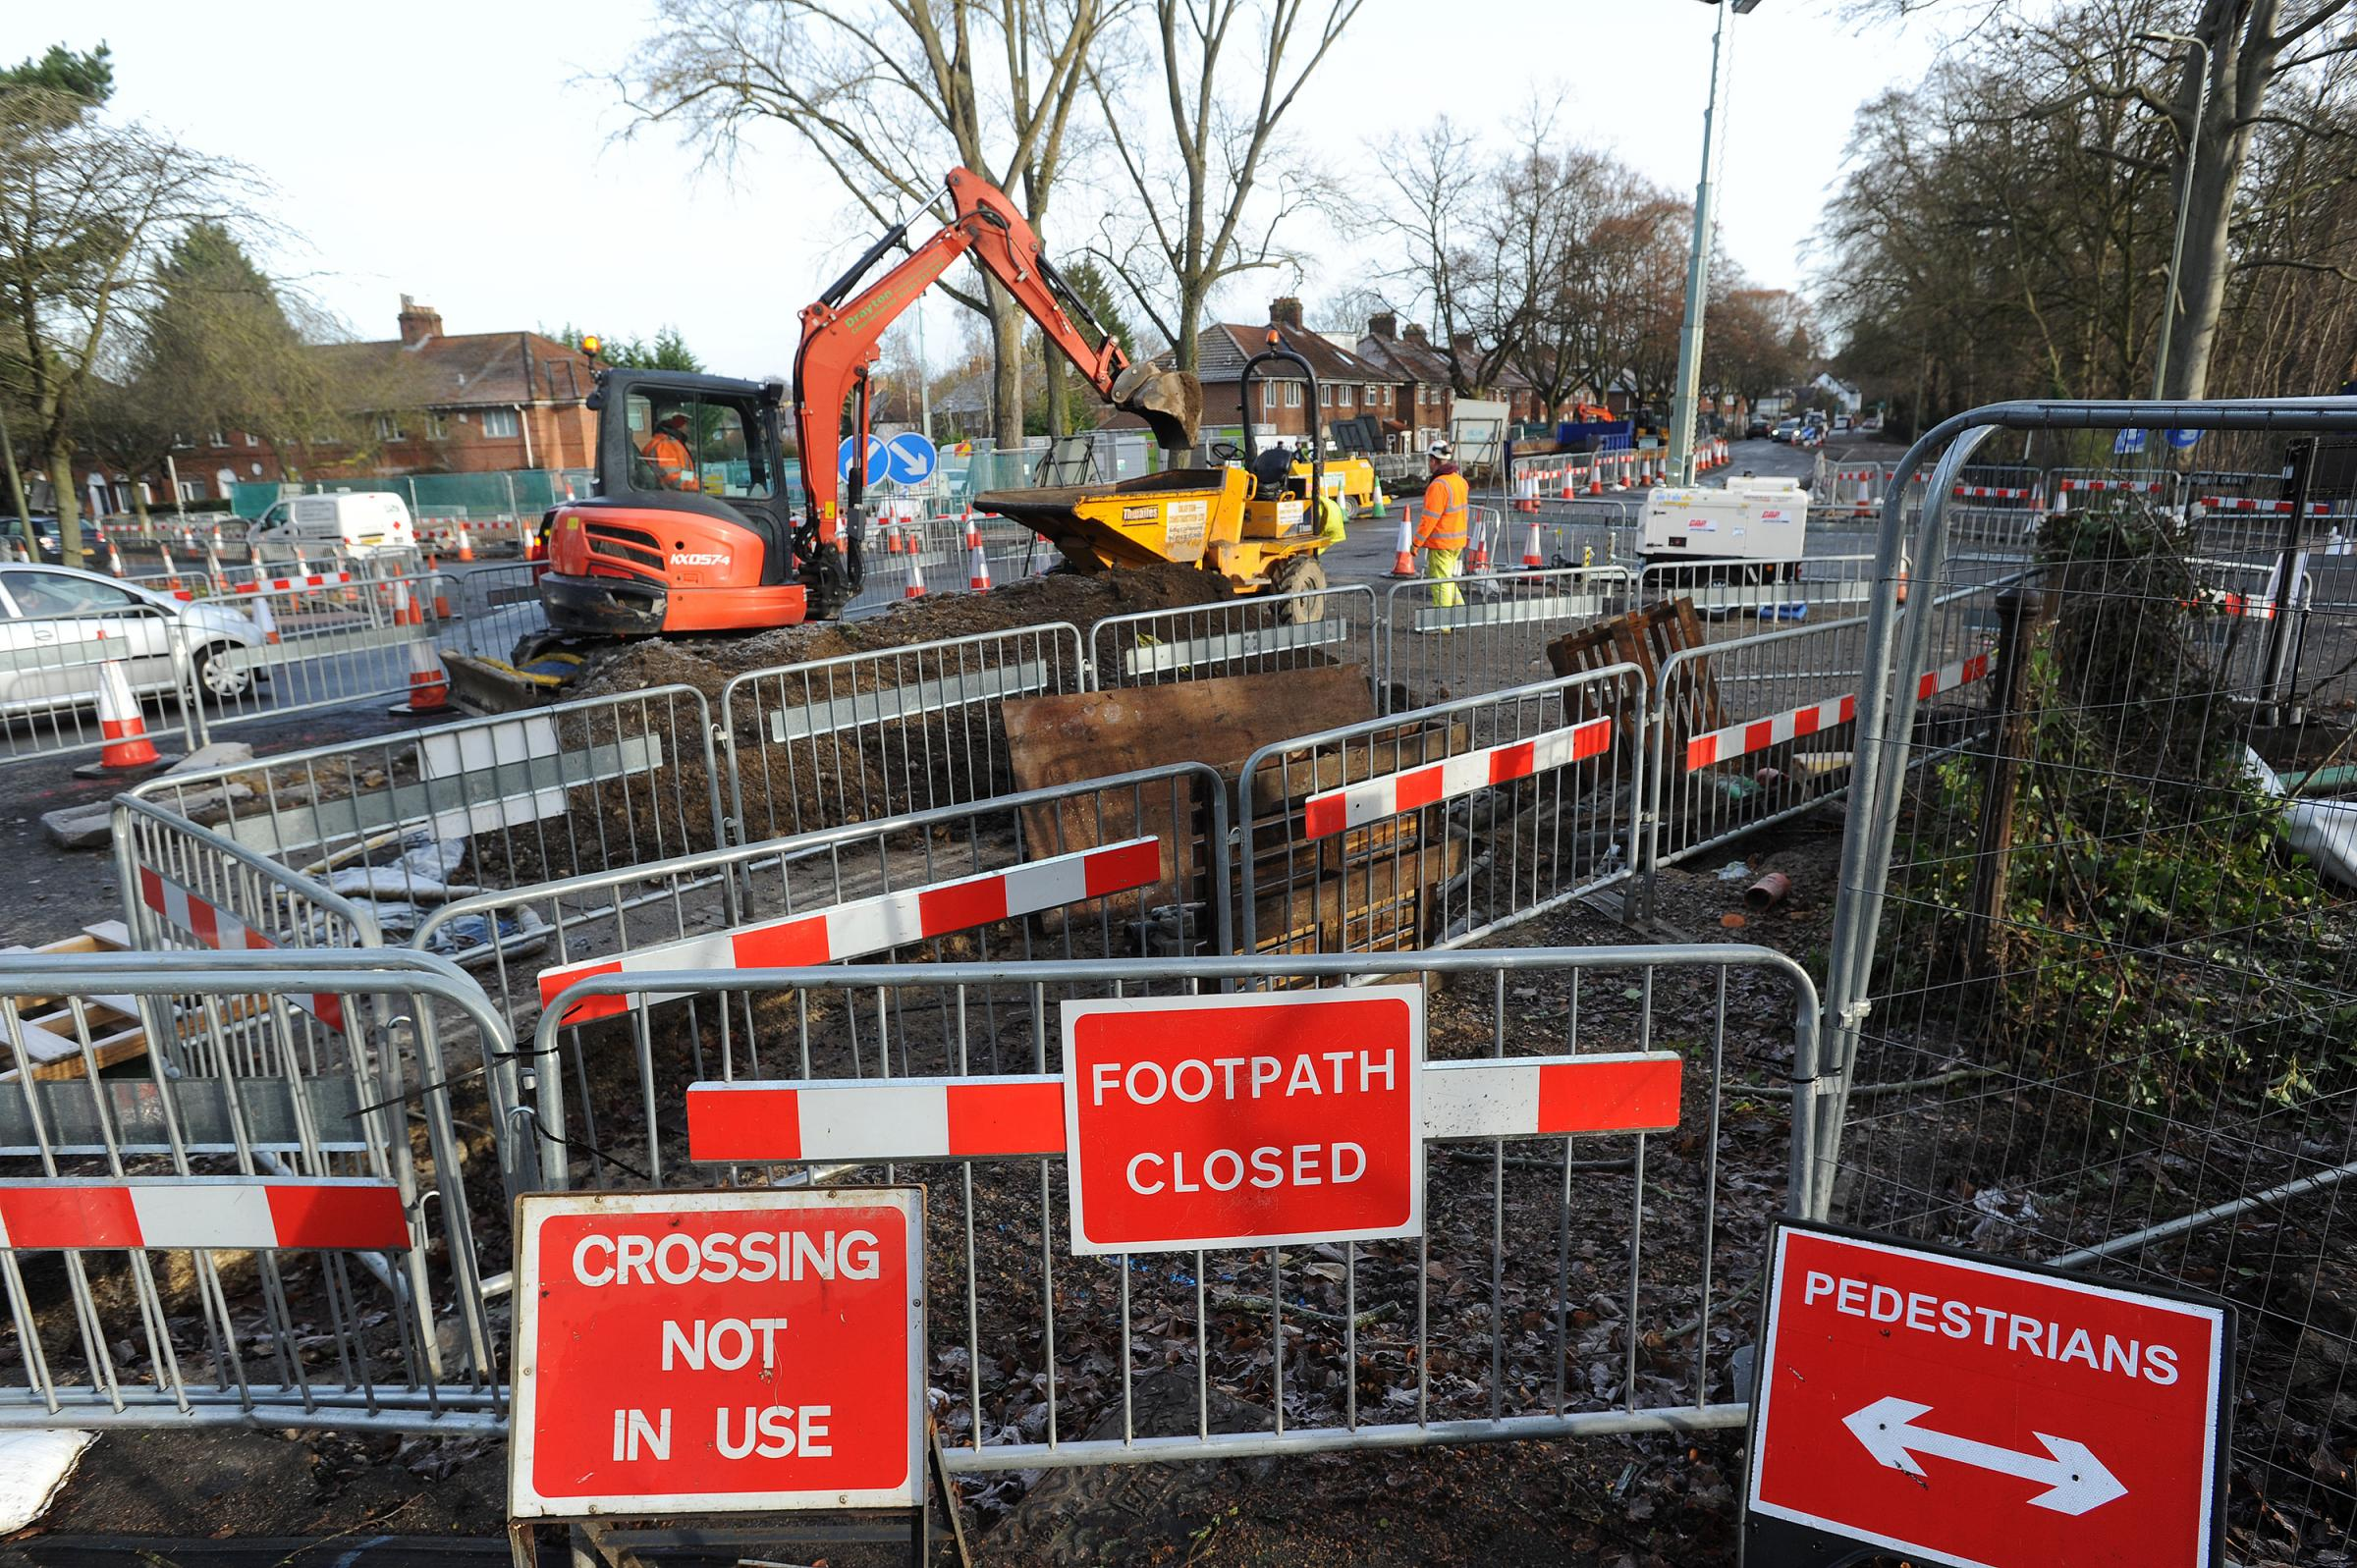 The four roads closed for next phase of Access to Headington